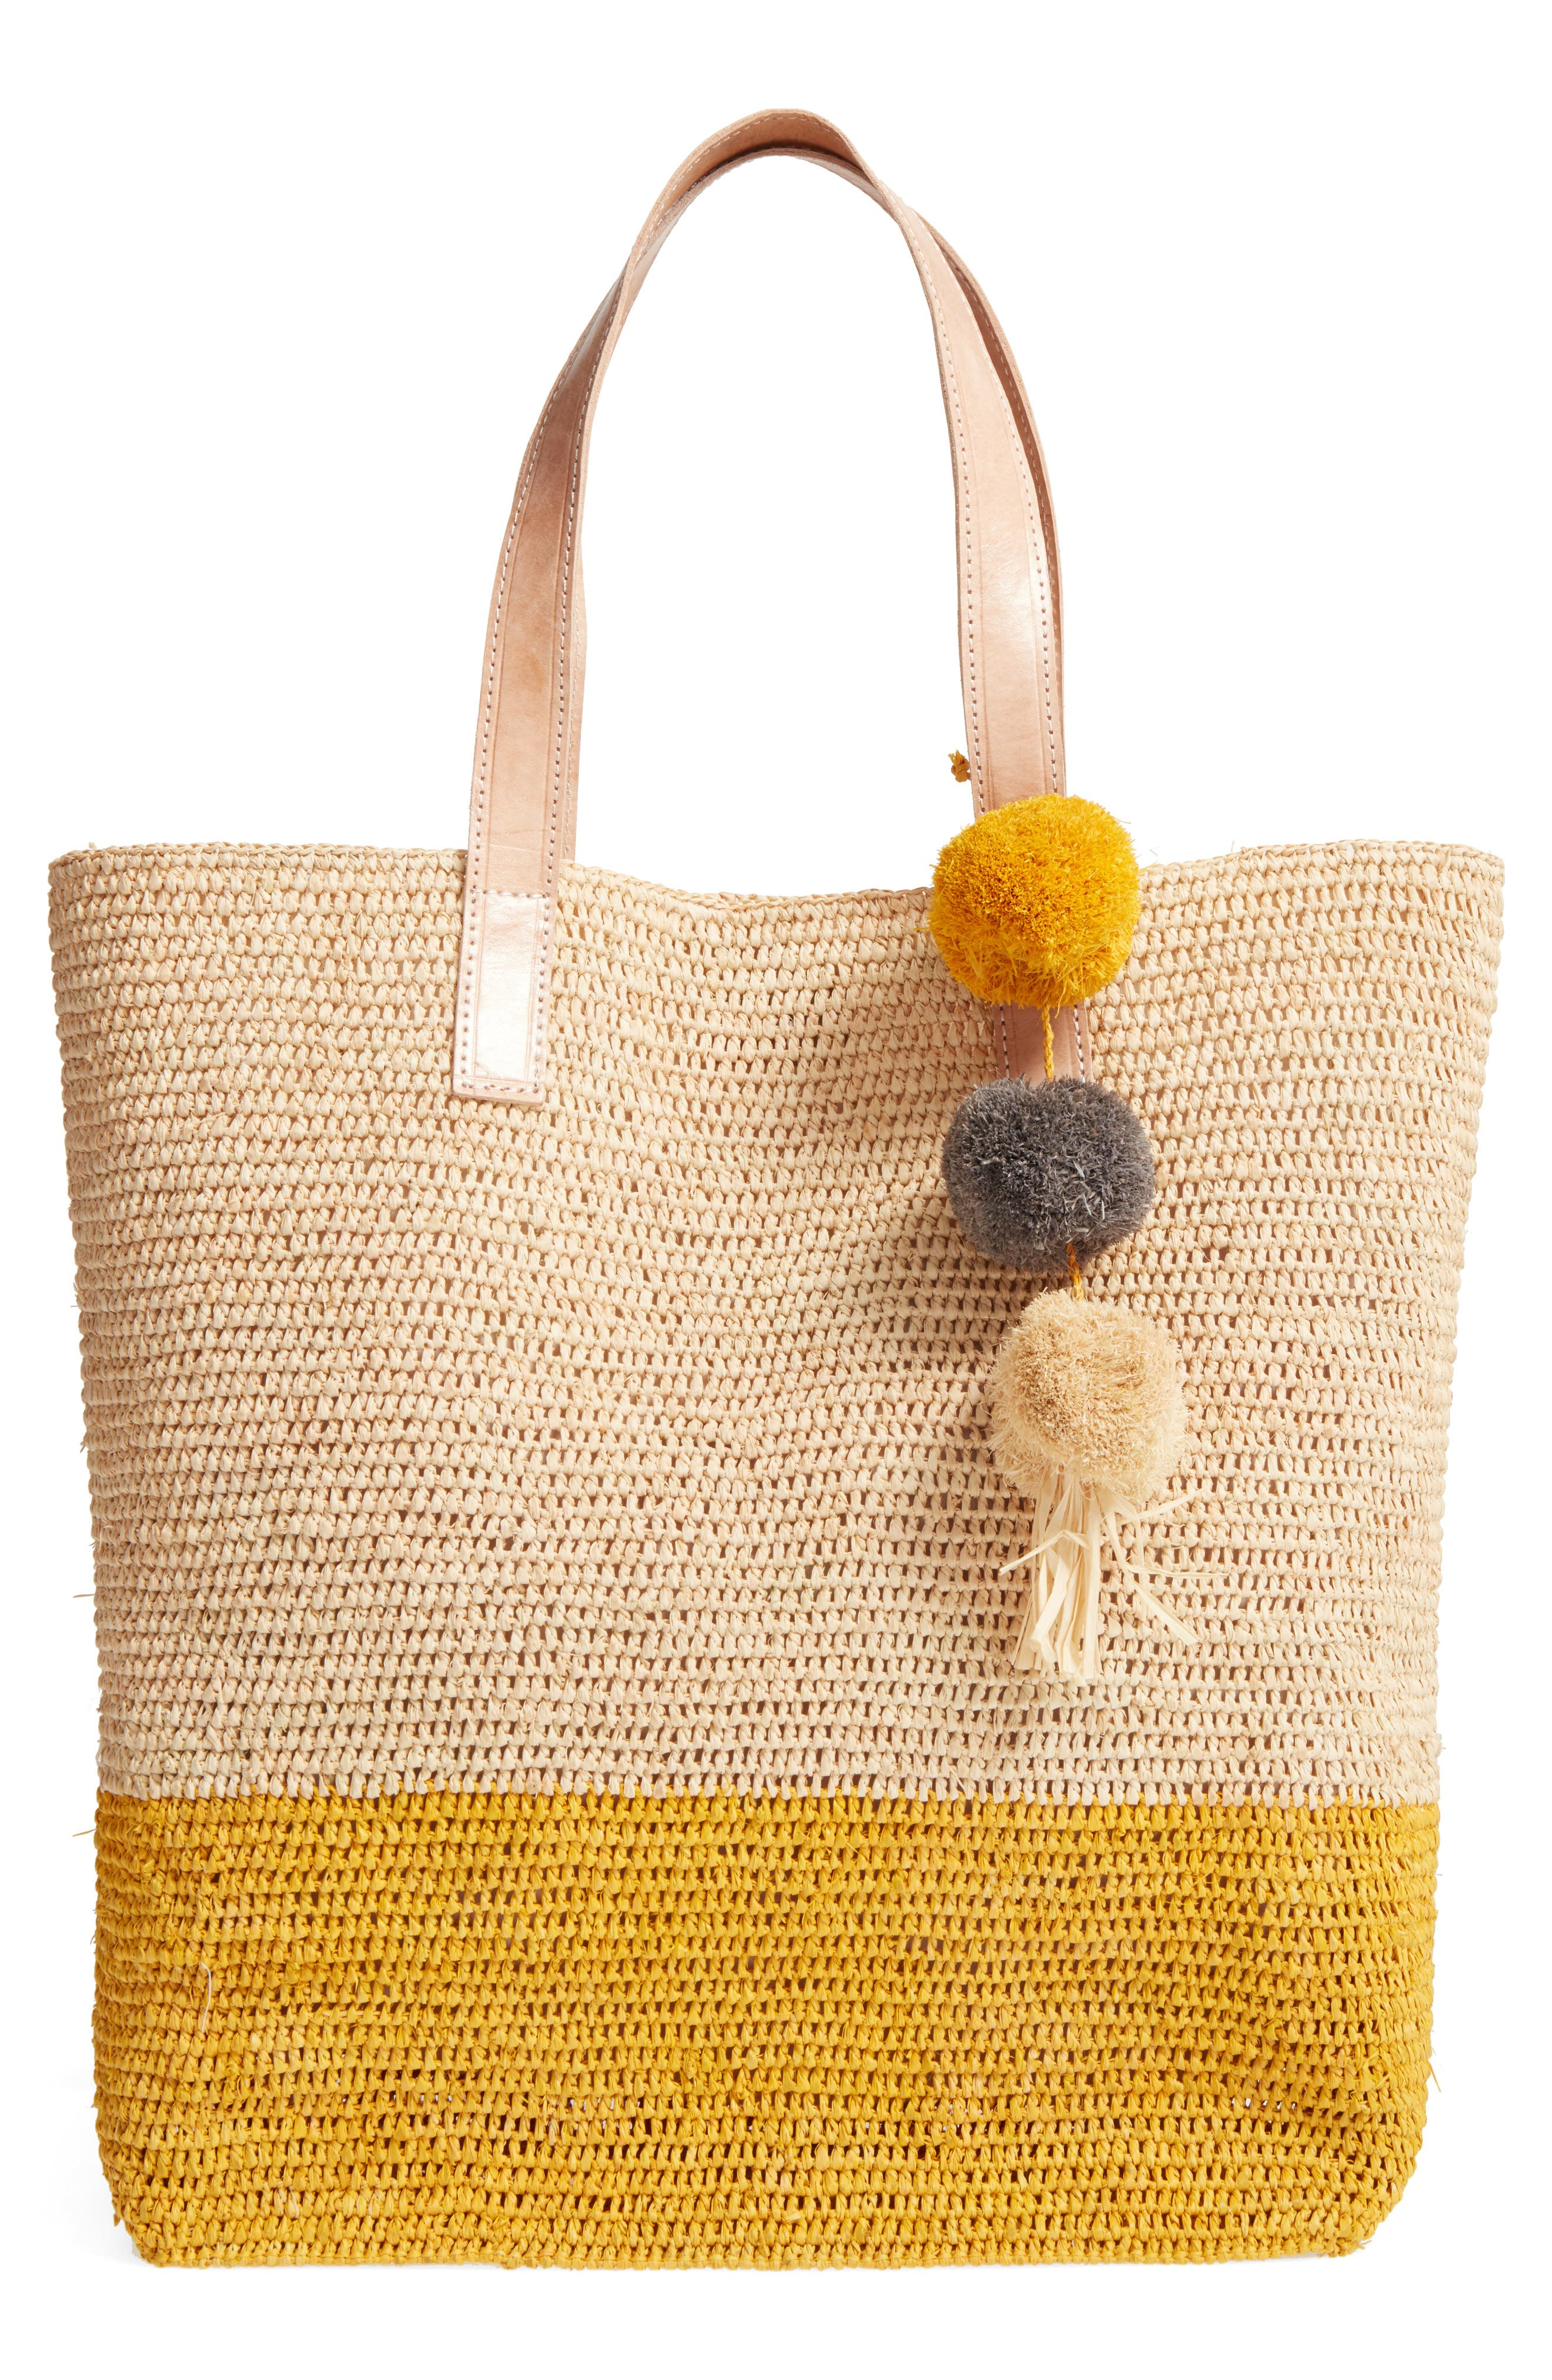 Main Image - Mar y Sol Montauk Woven Tote with Pom Charms